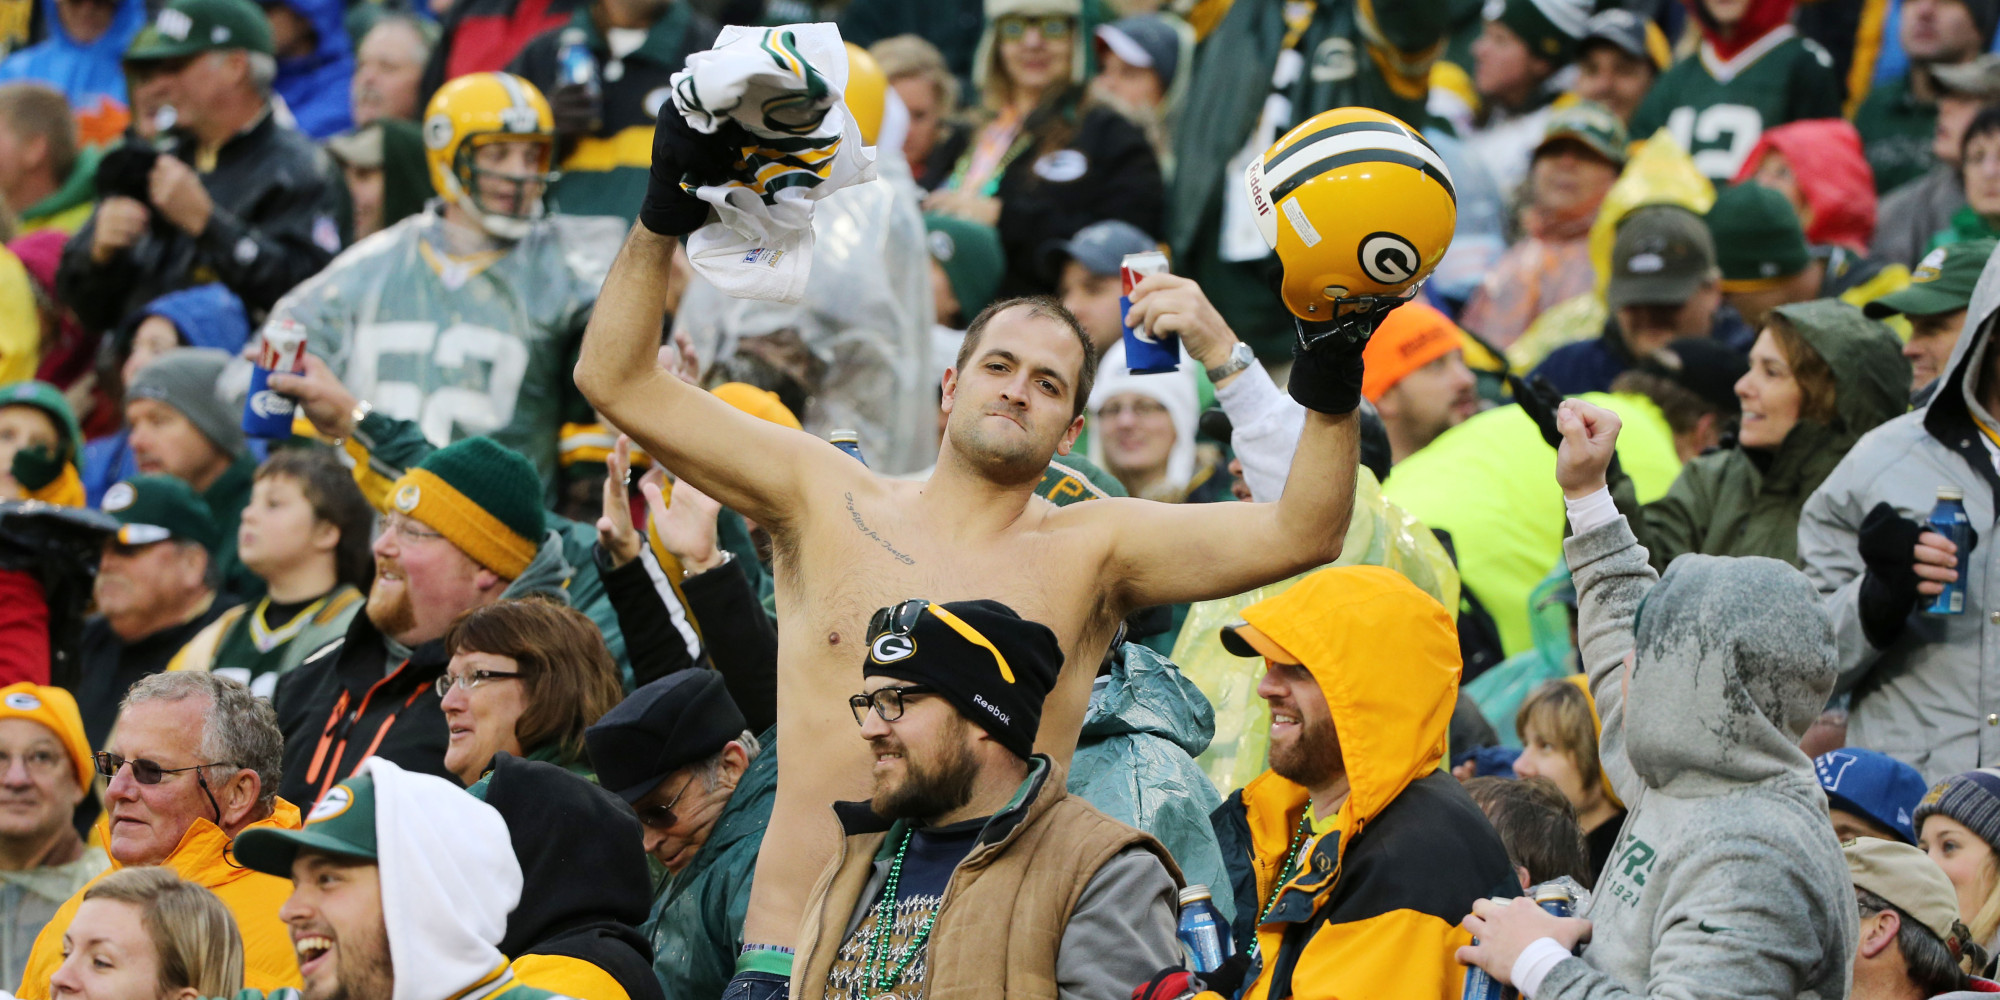 Milk, green bay packer fans in bikini Maravilhoso god damn